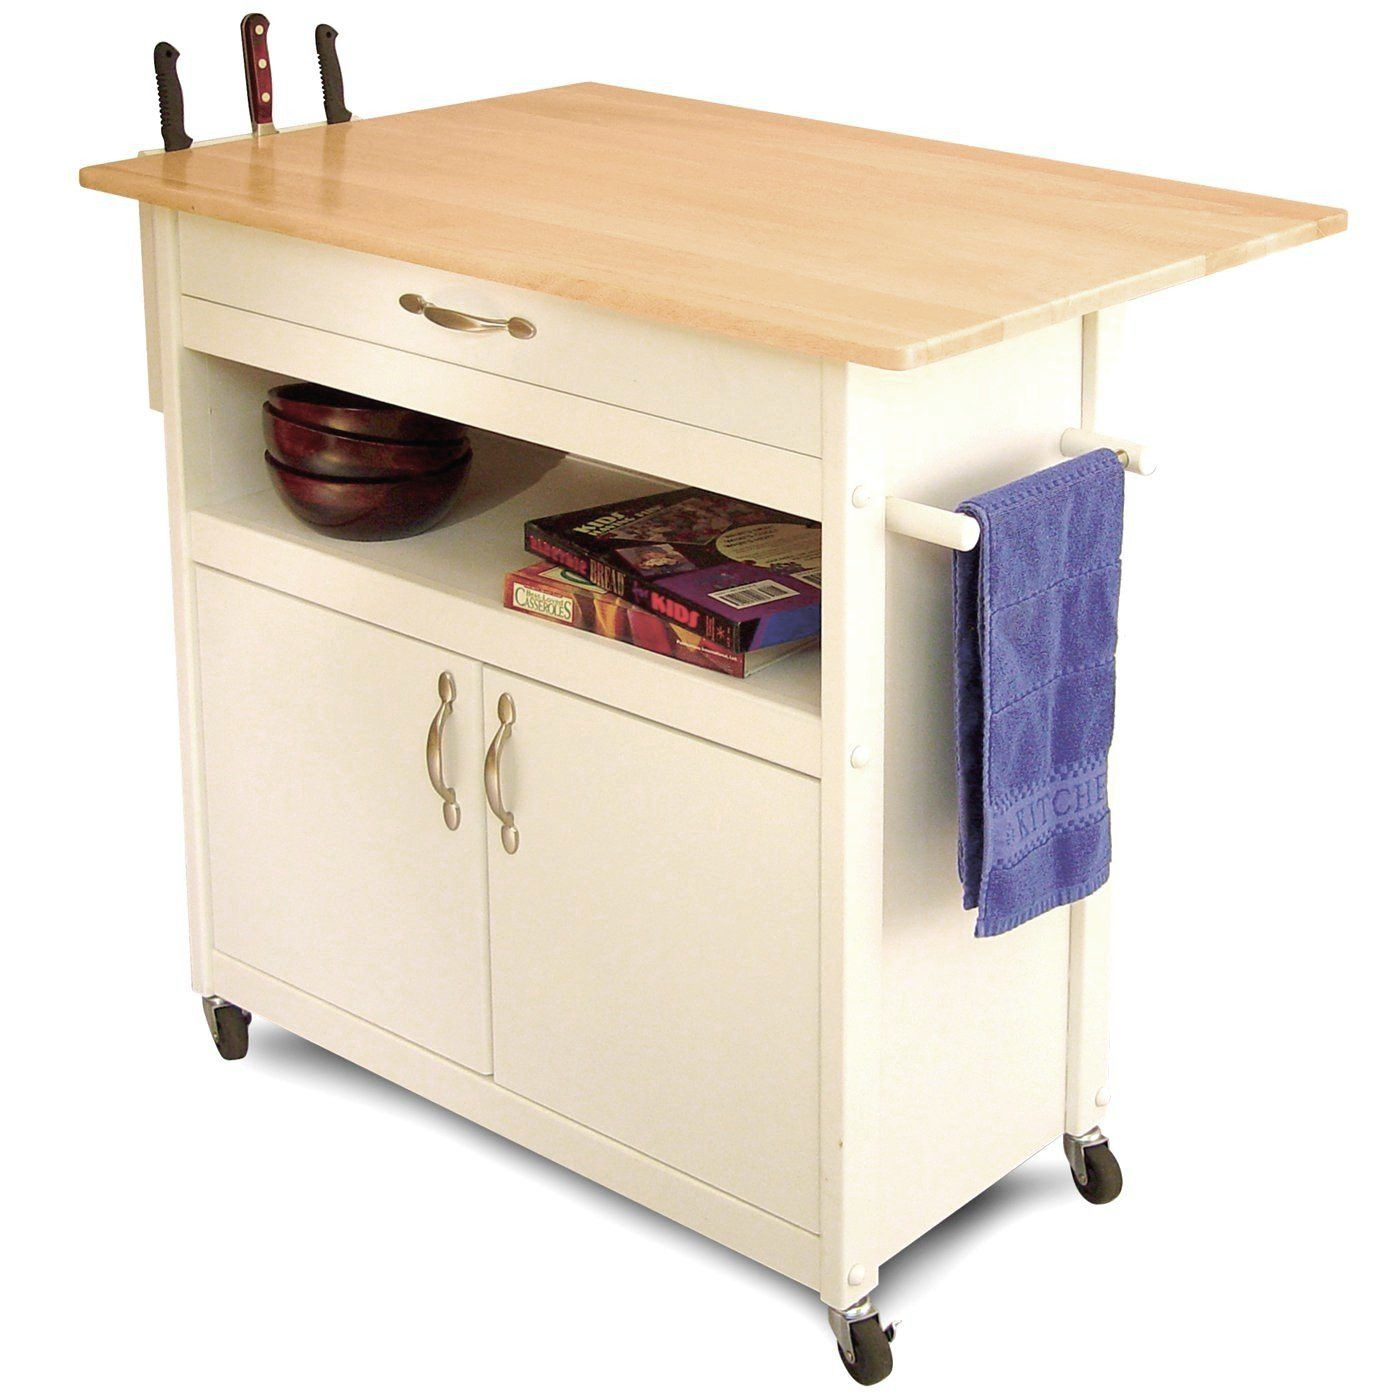 Cabinet Enclosed Storage Area Knife Rack Towel Bar Locking Casters Cottage Collection Product Type Kitchen Cart Base Finish White Mat